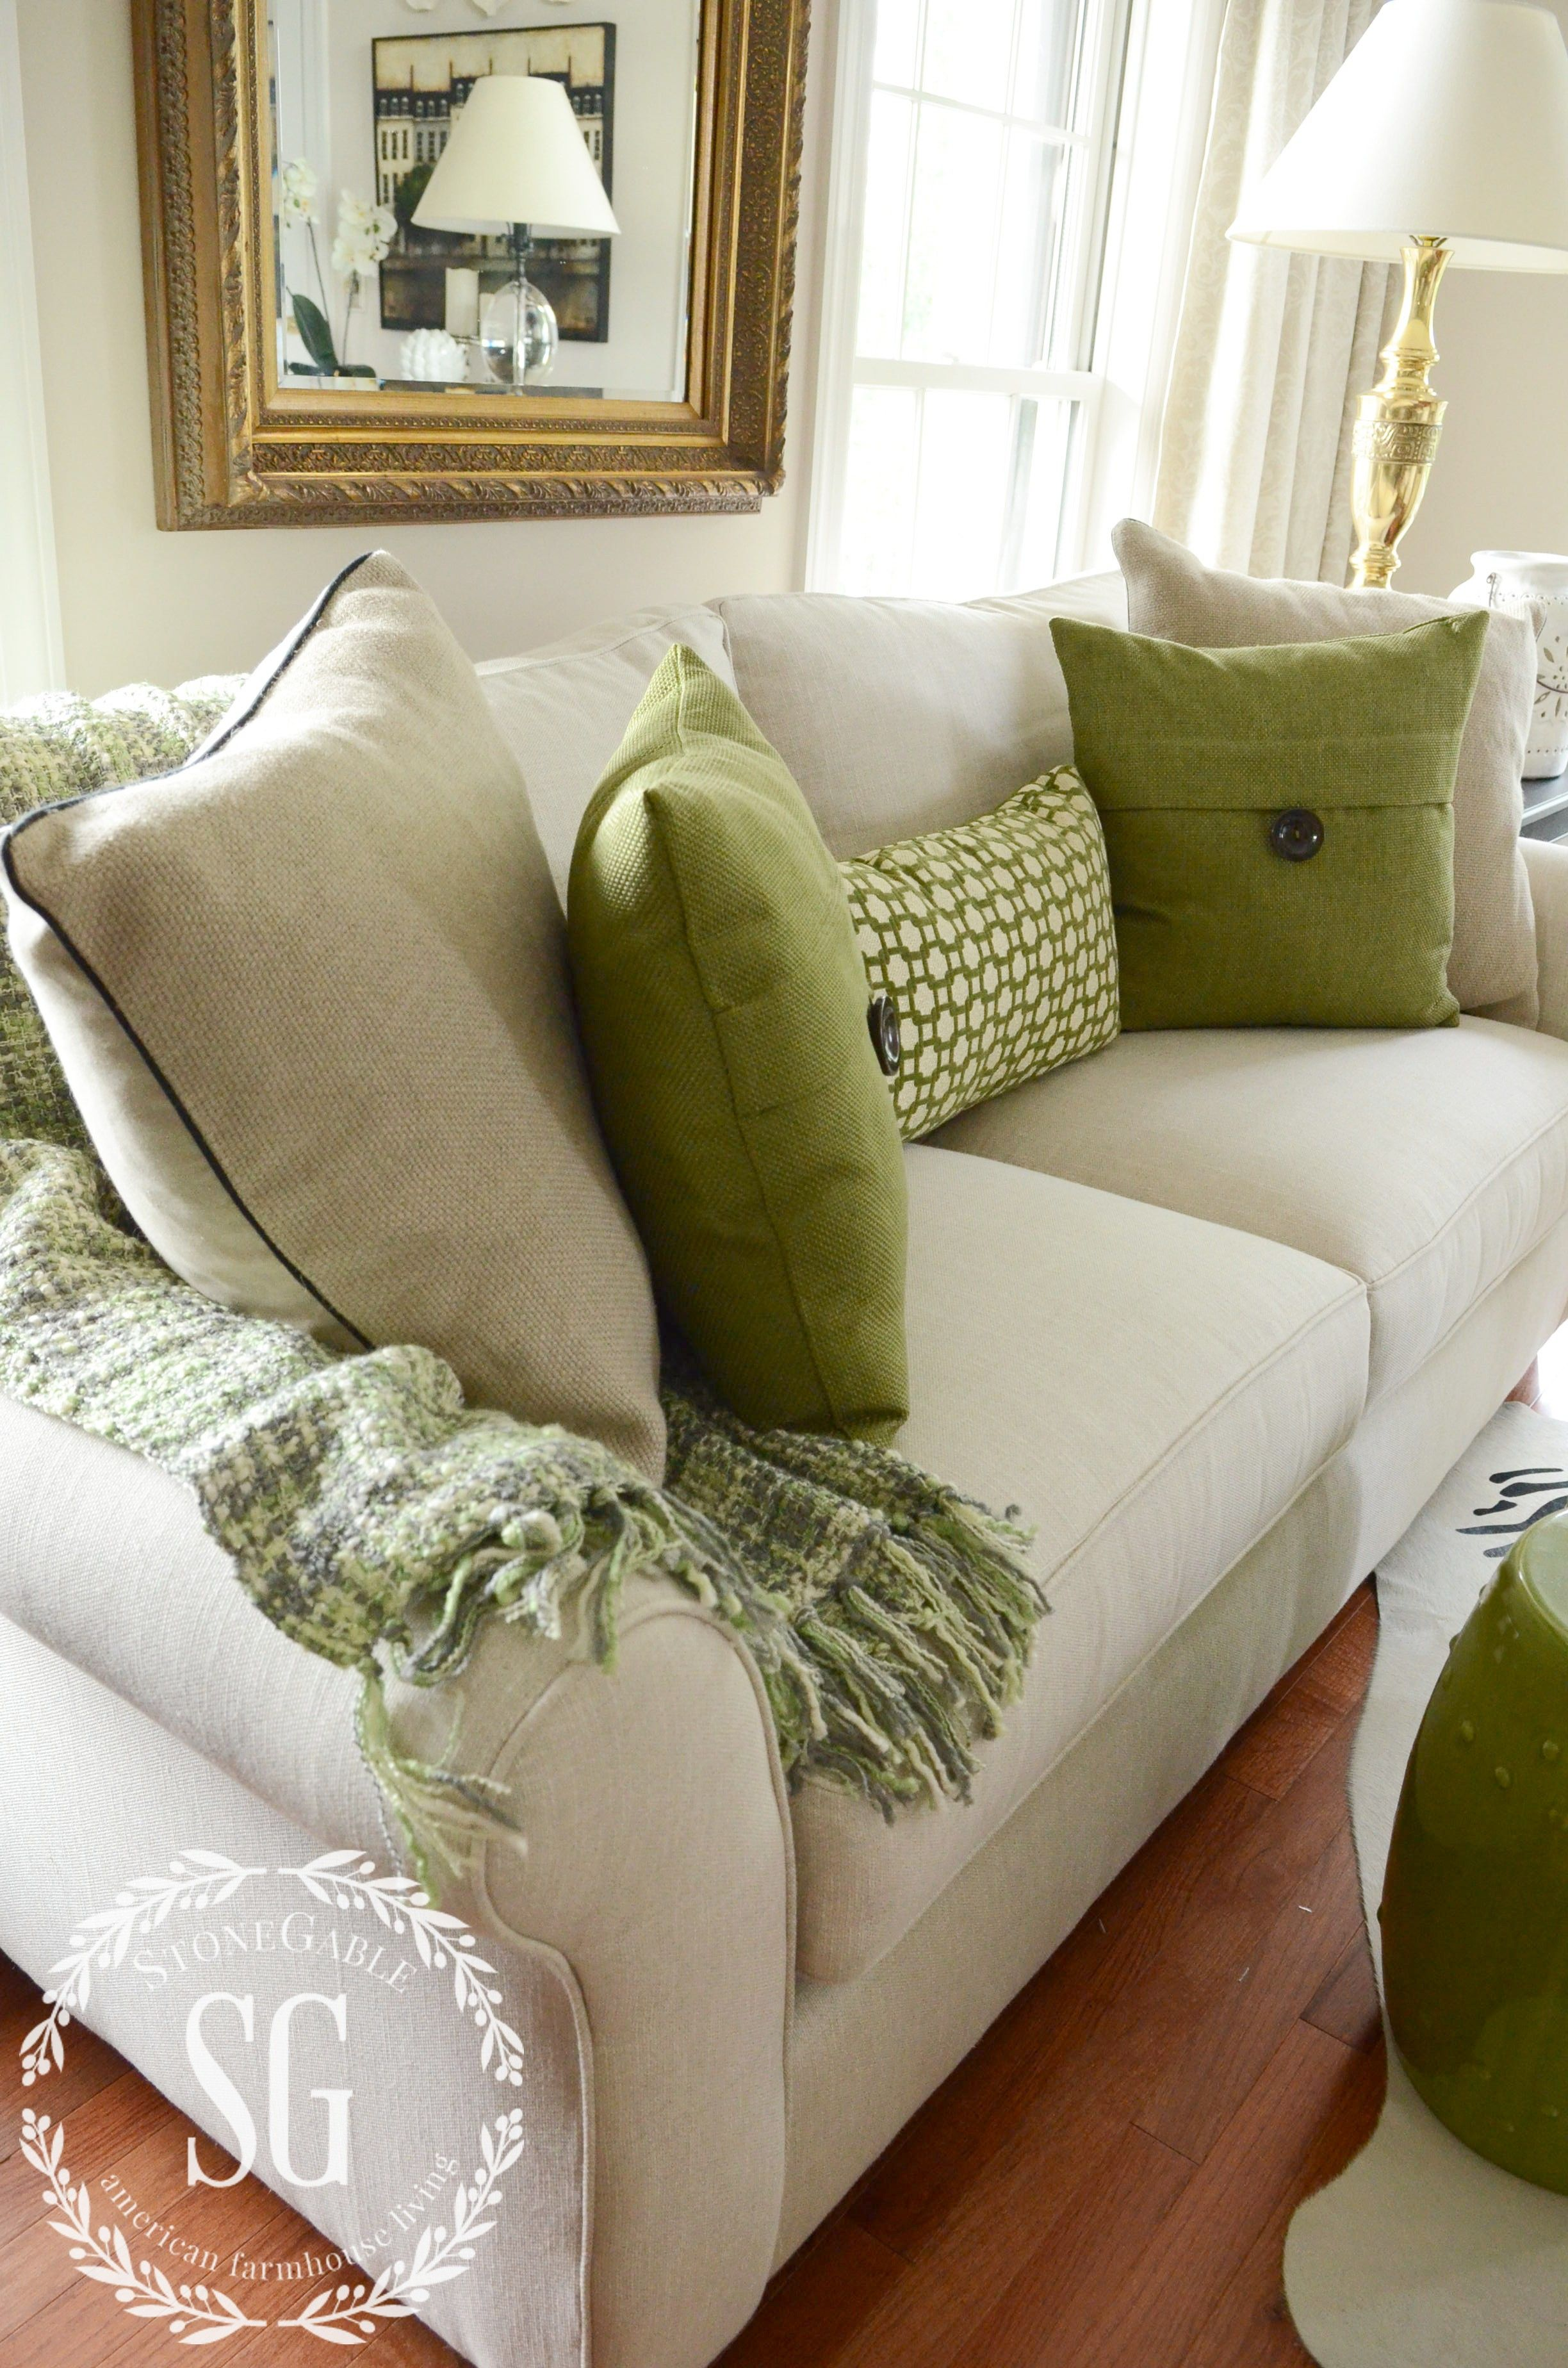 5 NO FAIL TIPS FOR ARRANGING PILLOWS   Home improvements   Pinterest     neutral and green pillows on a neutral sofa with a green throw